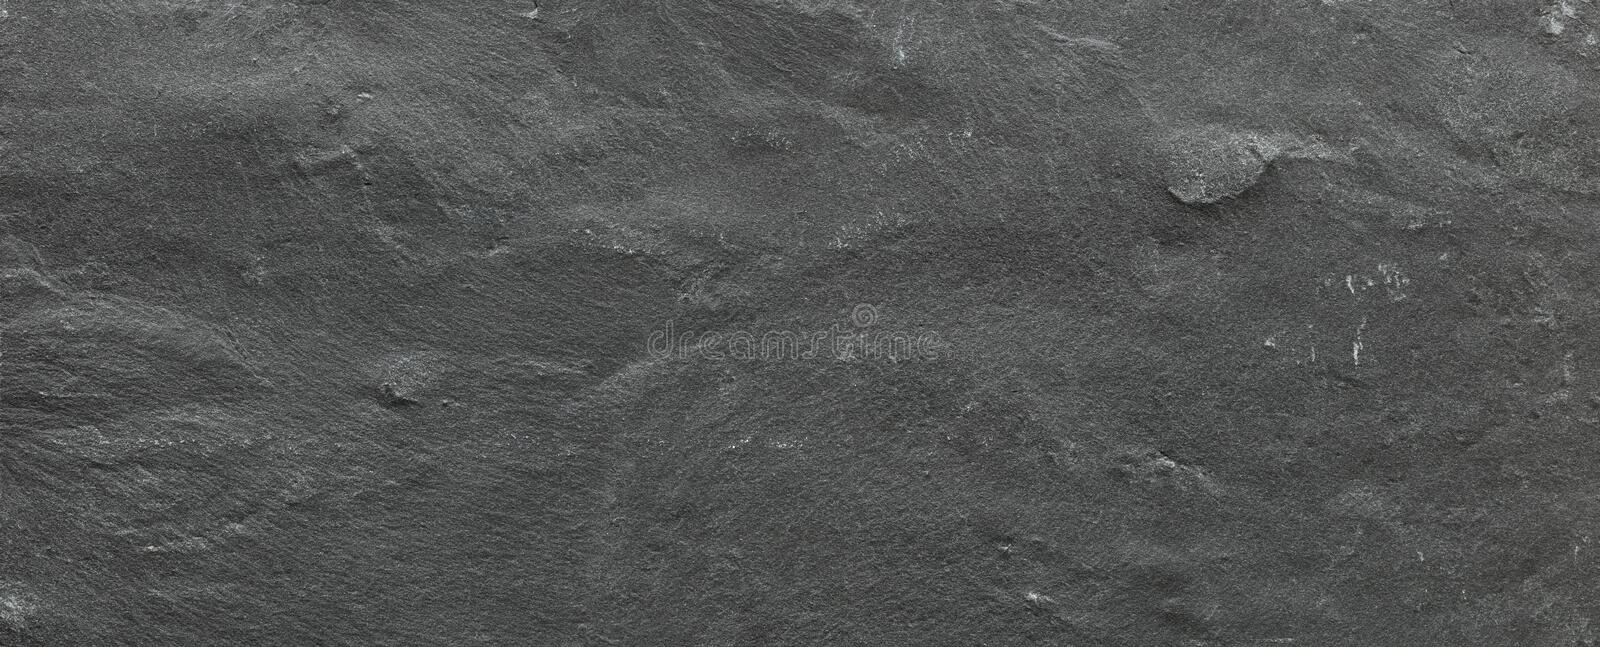 Dark grey ore black slate background or texture, Dark stone background, stone texture royalty free stock photography